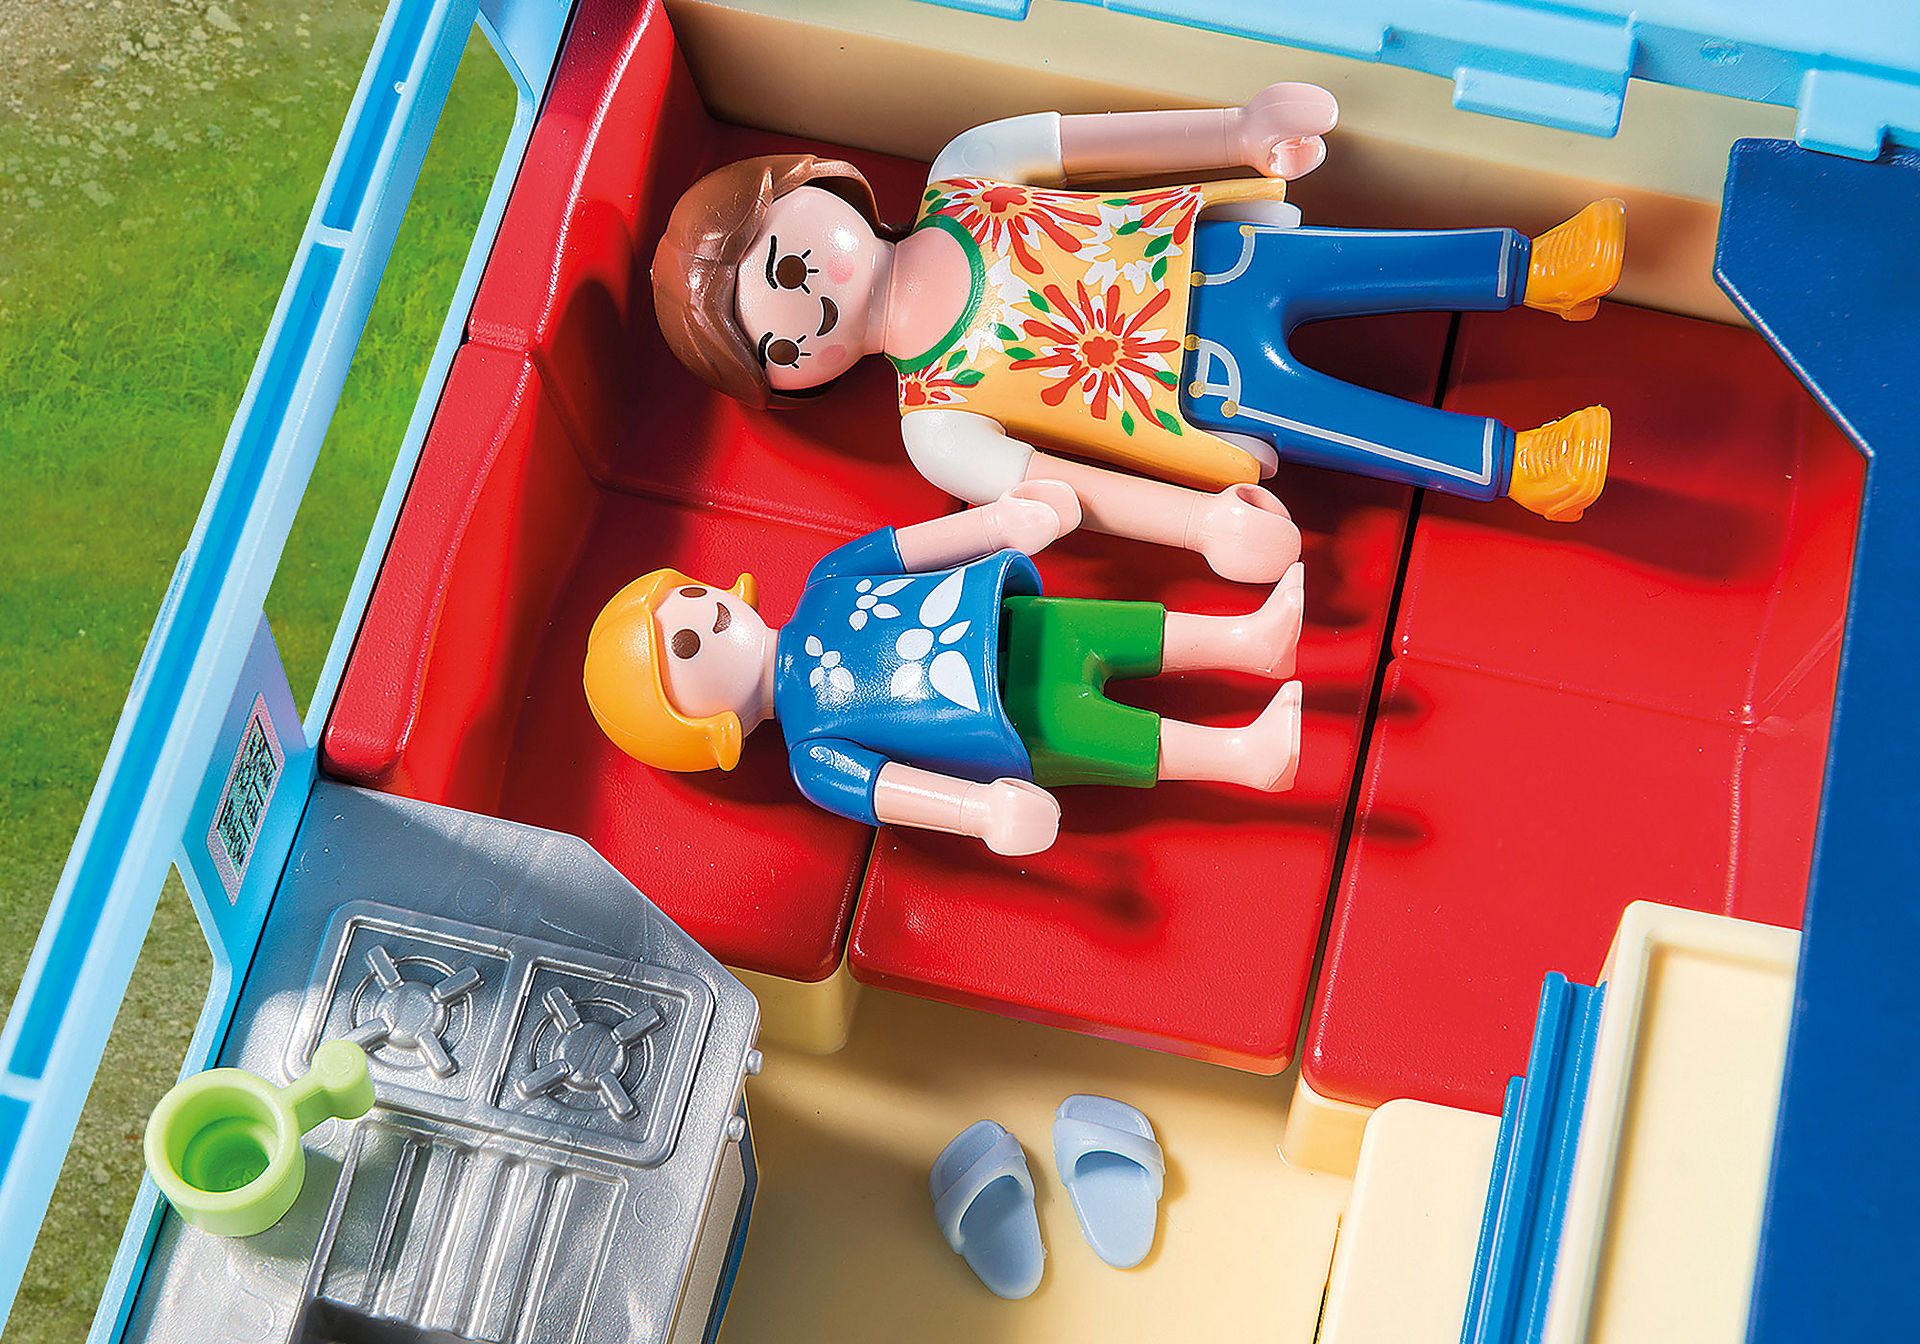 http://media.playmobil.com/i/playmobil/9502_product_extra3/PLAYMOBIL-FunPark Pickup with Camper